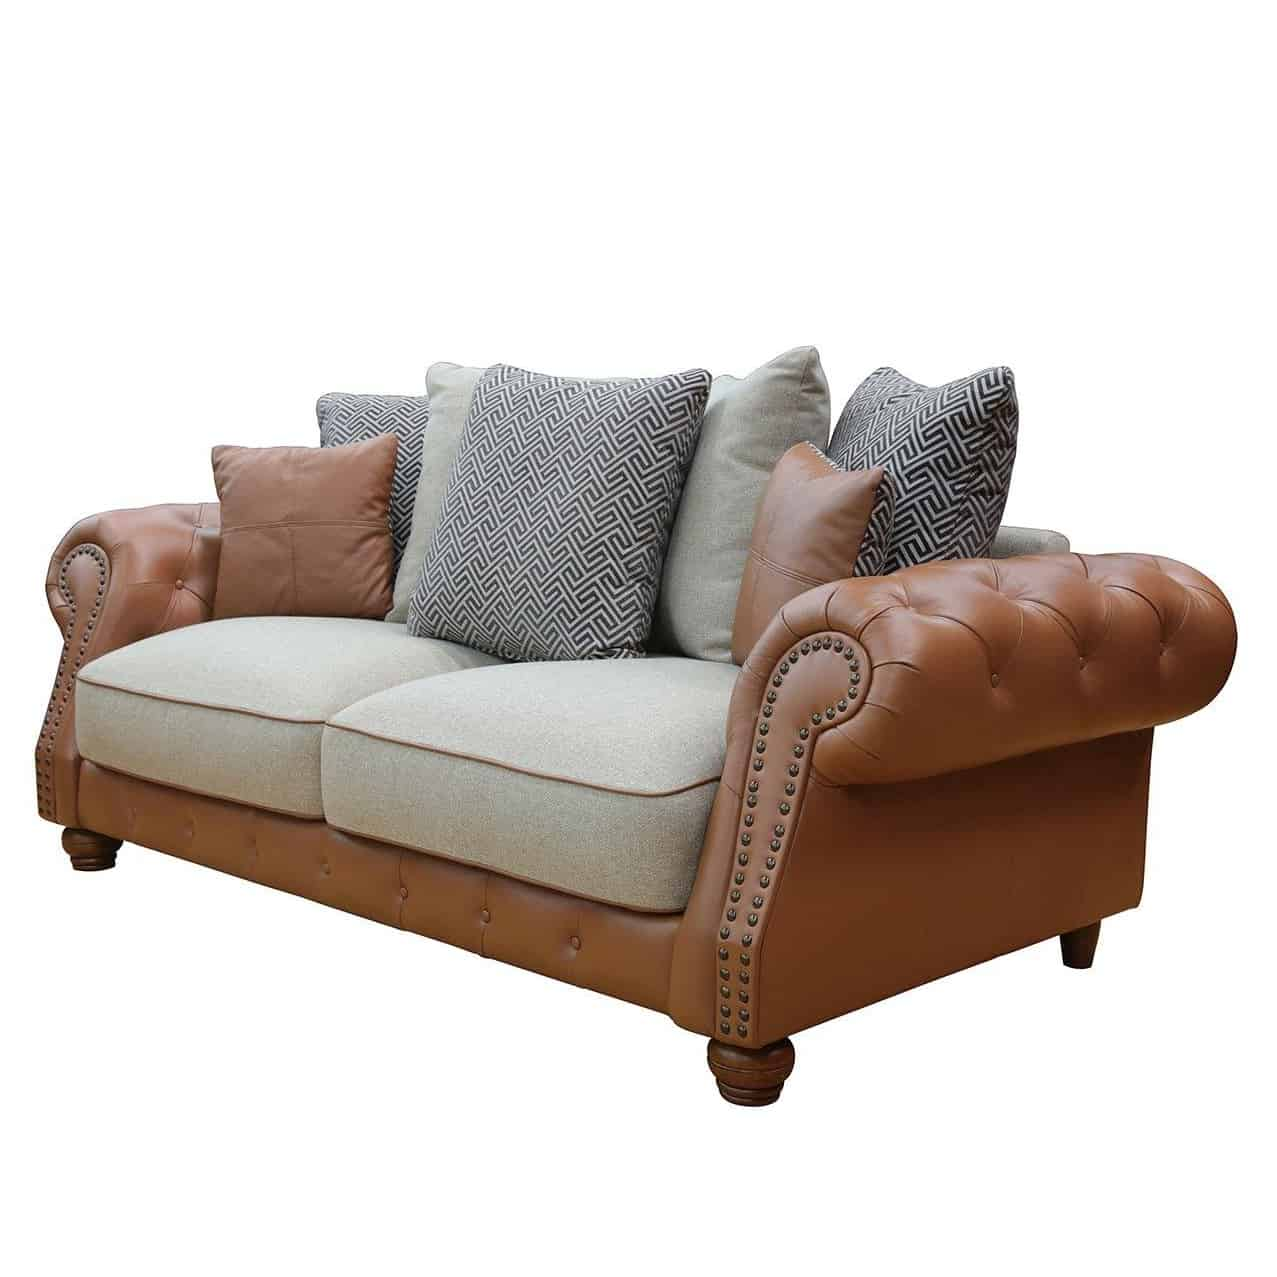 Tan leather and fabric sofa with scatter back cushions